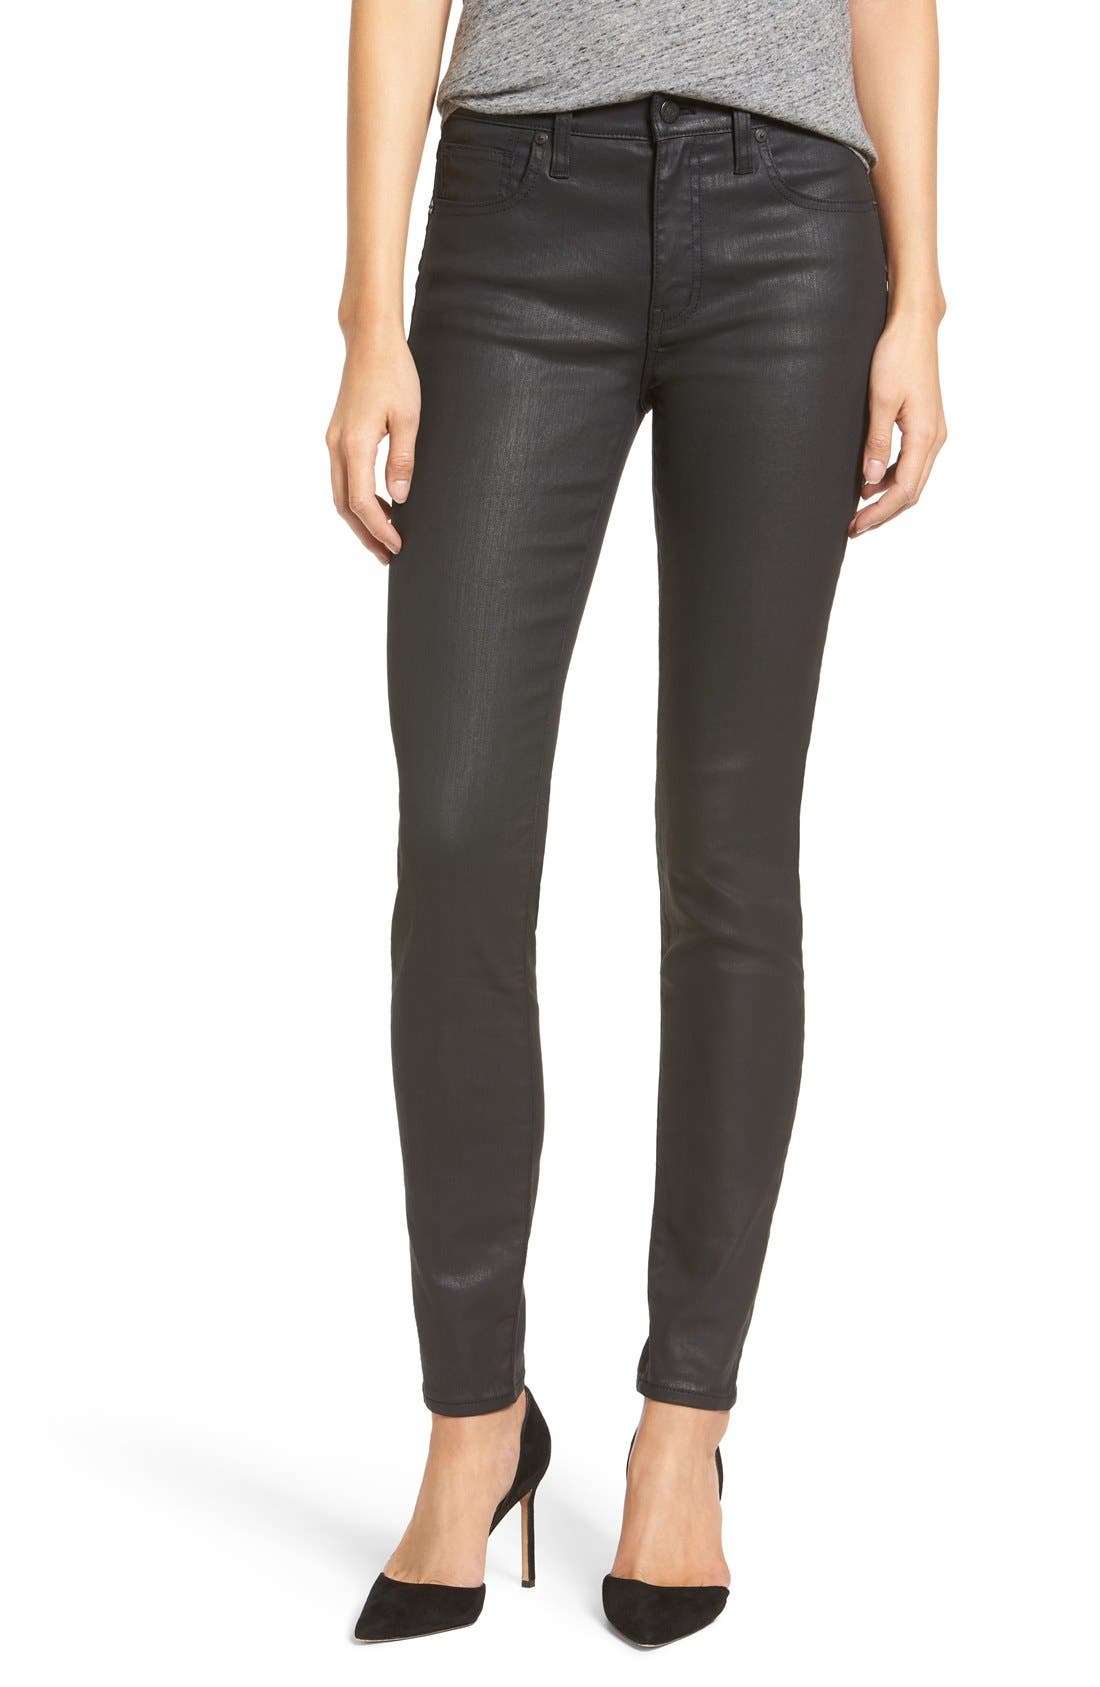 Alternate Image 1 Selected - Madewell 'High Riser' Coated Skinny Jeans